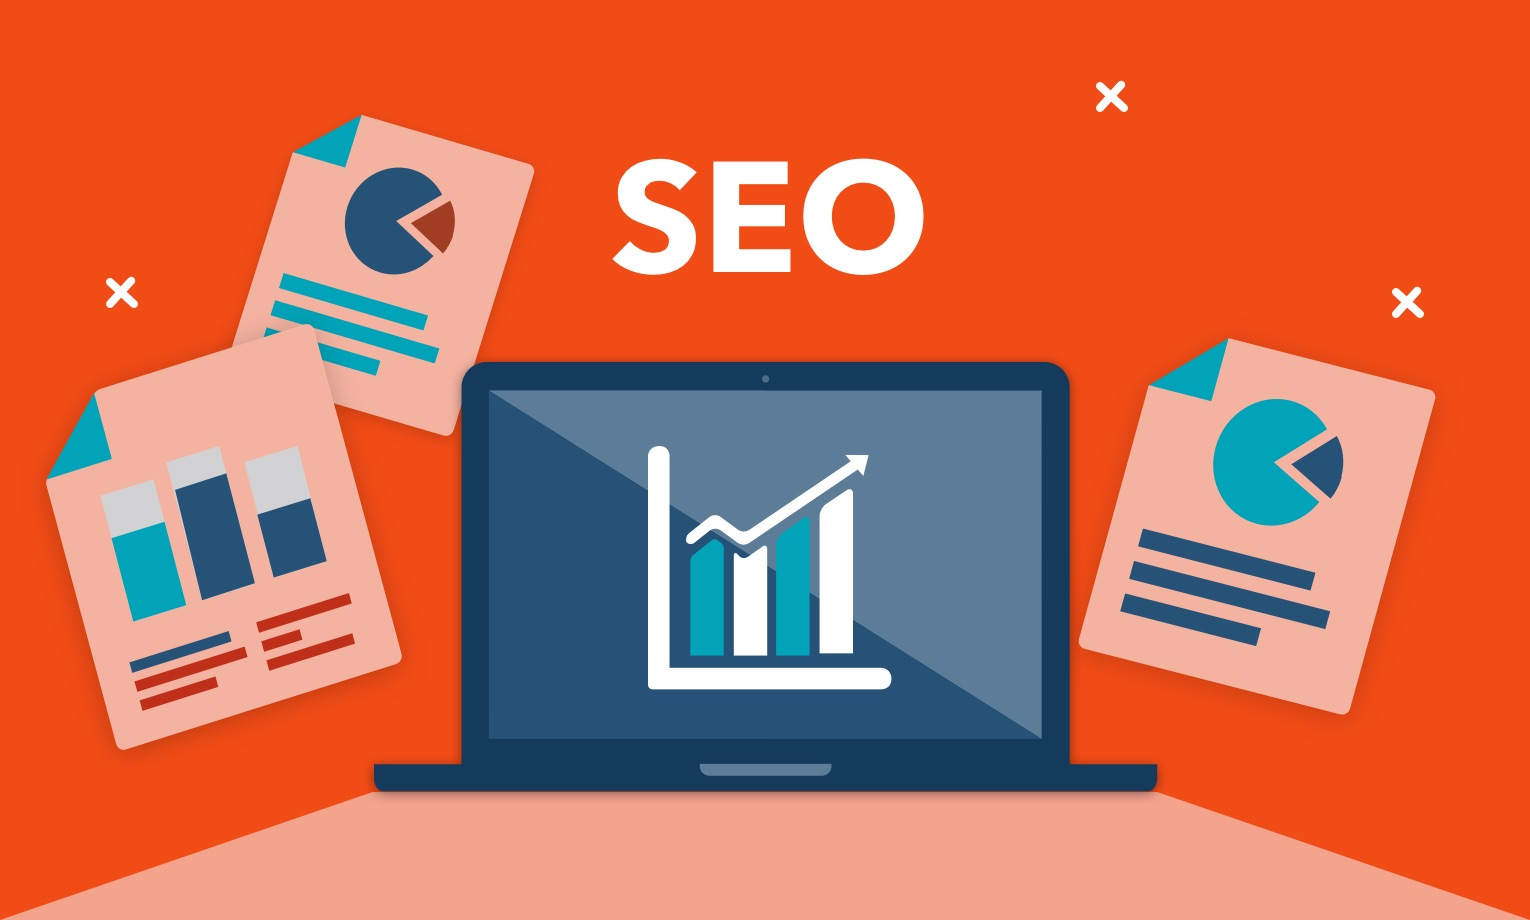 Ten Quick Tips to Improve Your SEO Ranking